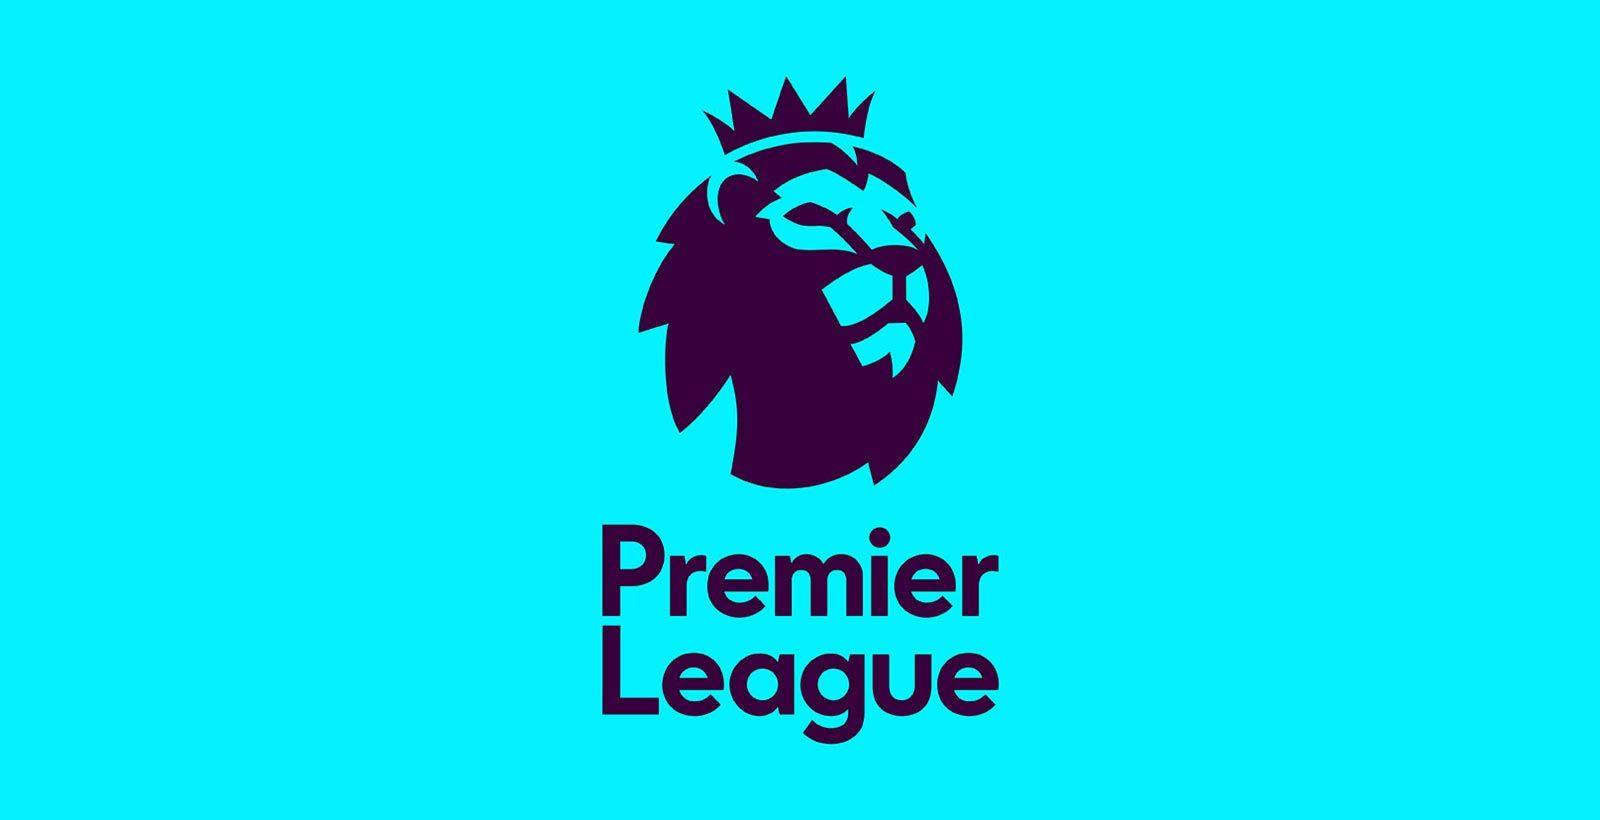 27/02/2021 Daily Predictions: English Premier League – Manchester City vs West Ham